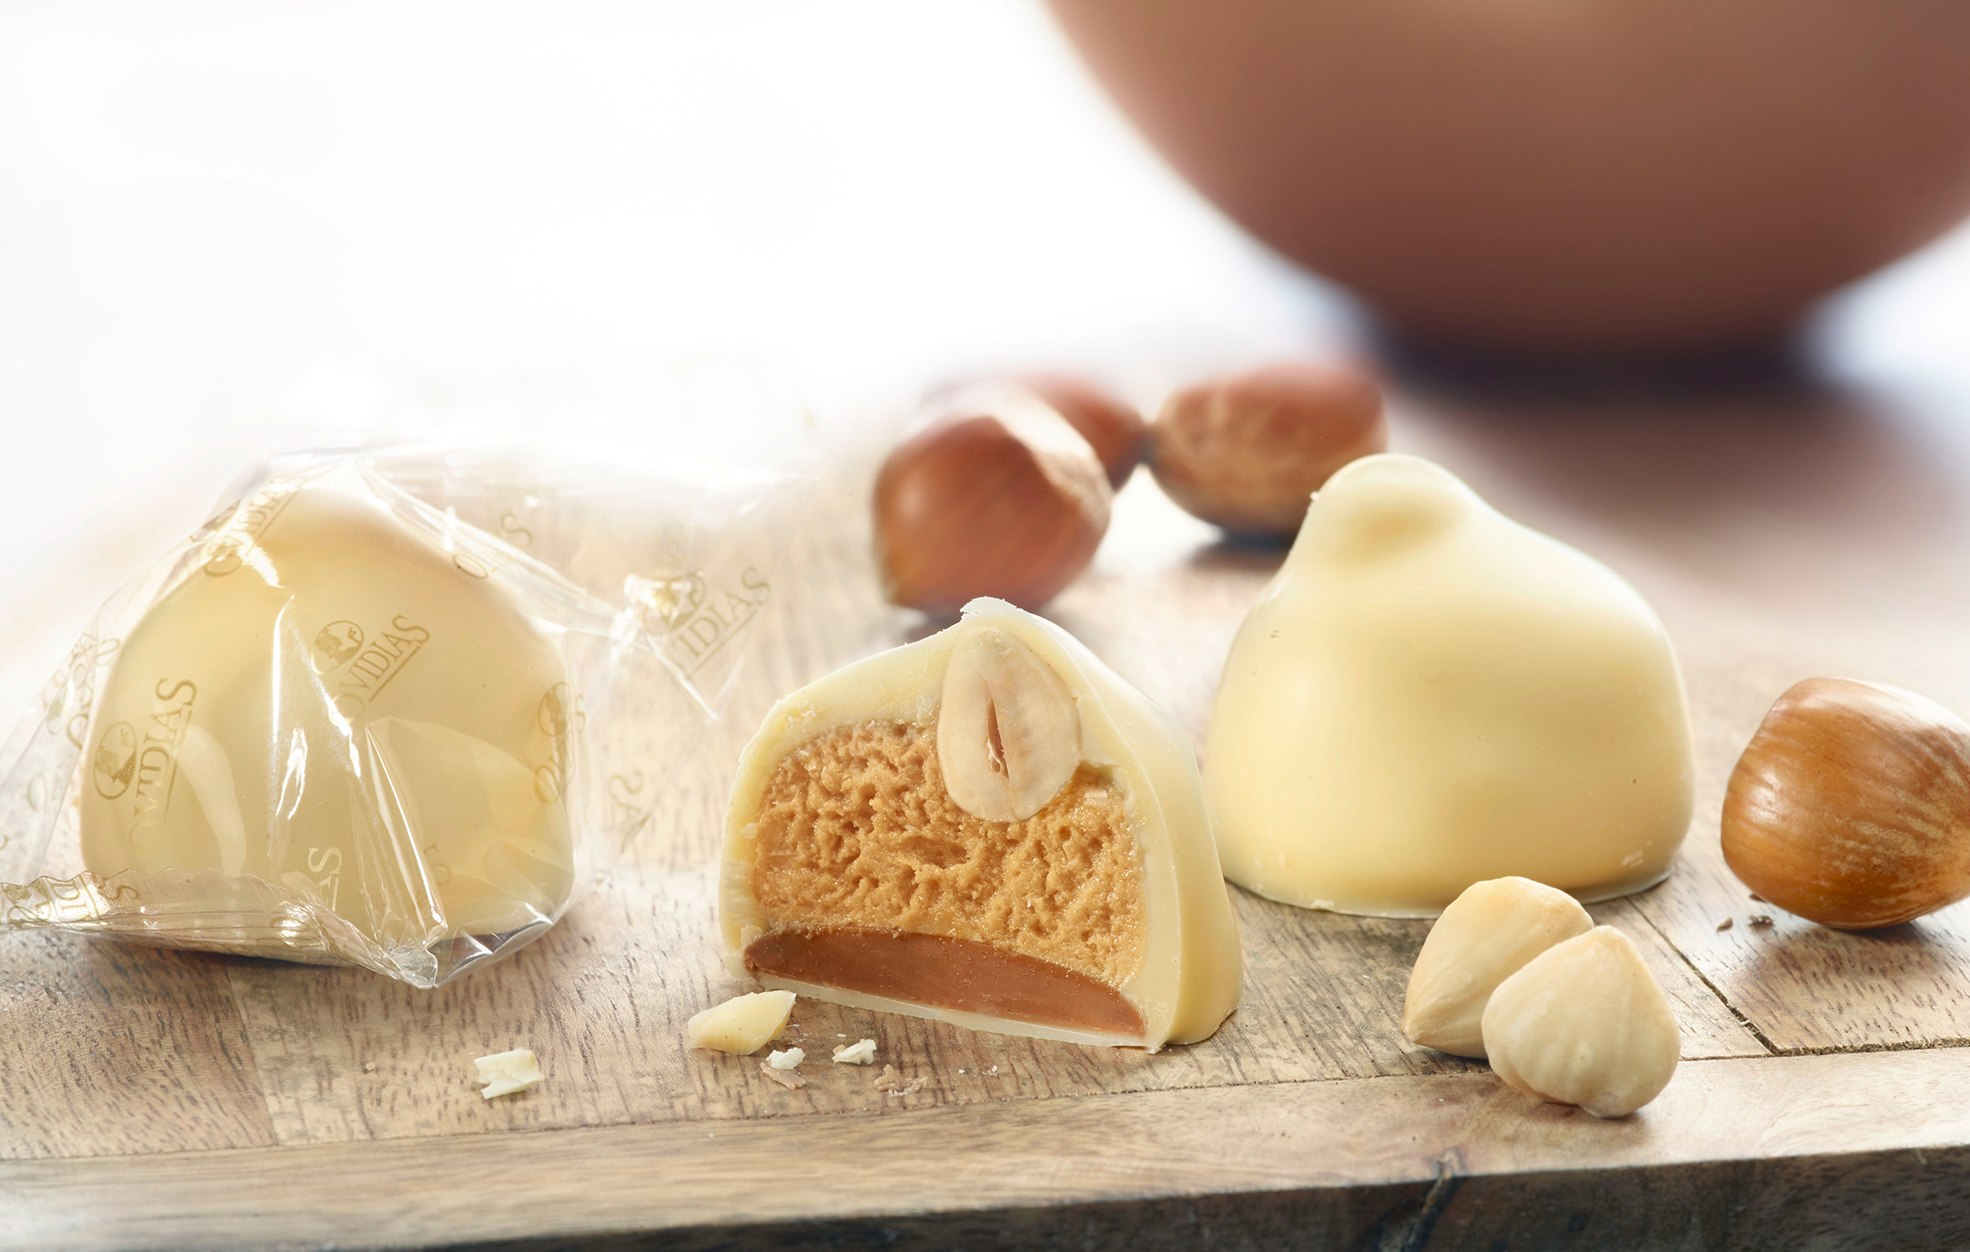 Manon white chocolate with haselnut